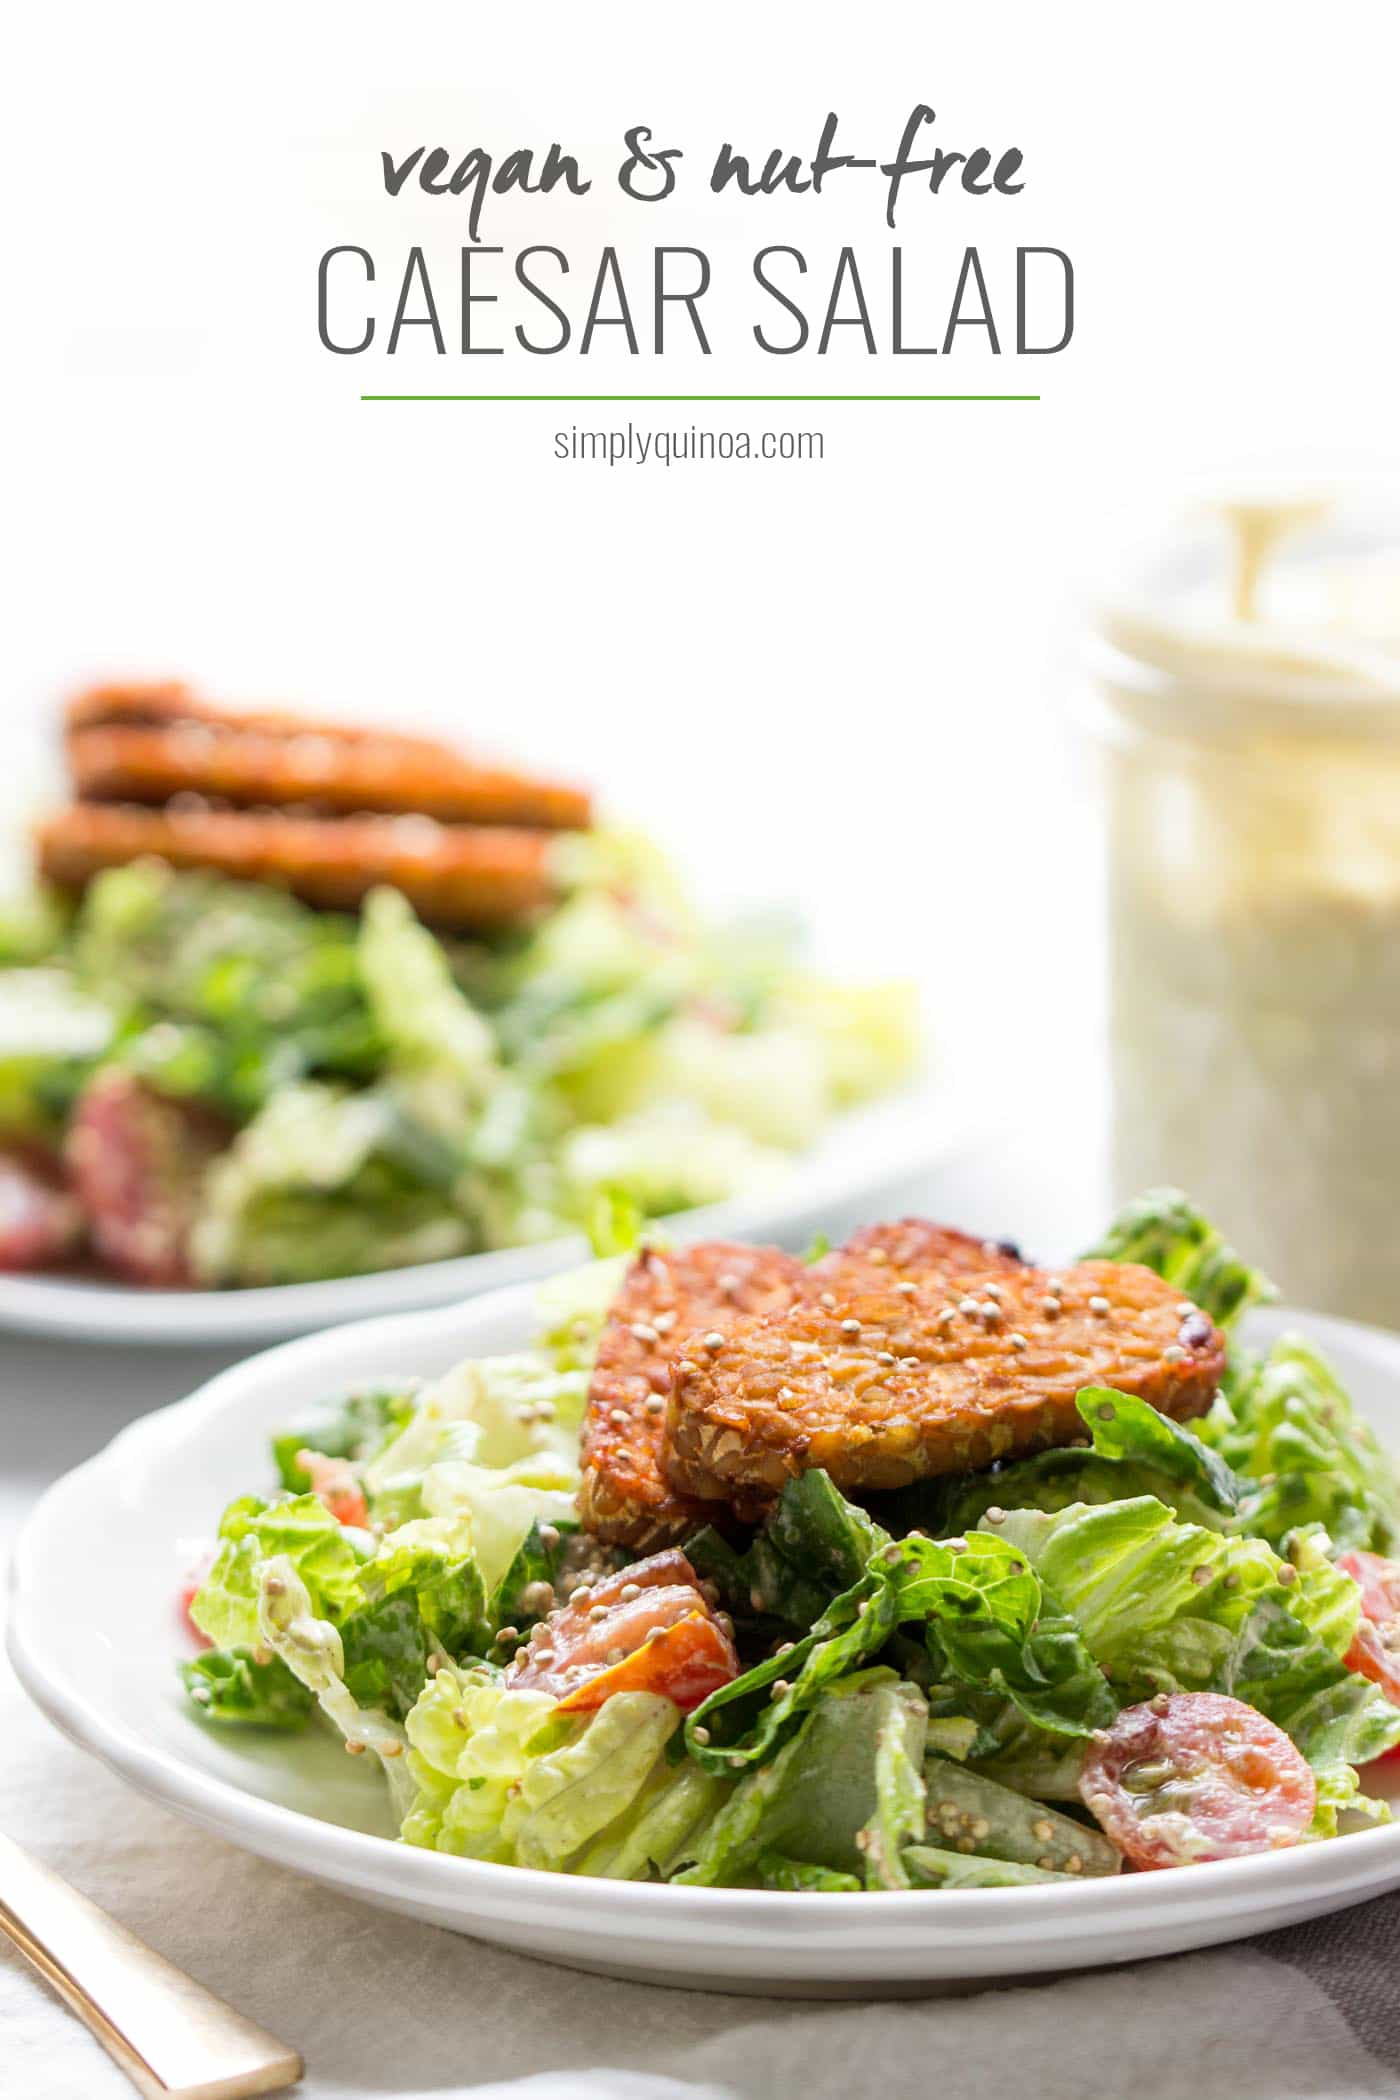 Nut-Free Vegan Caesar Salad! This is the most EPIC salad I've ever tasted -- it's amazing!!!